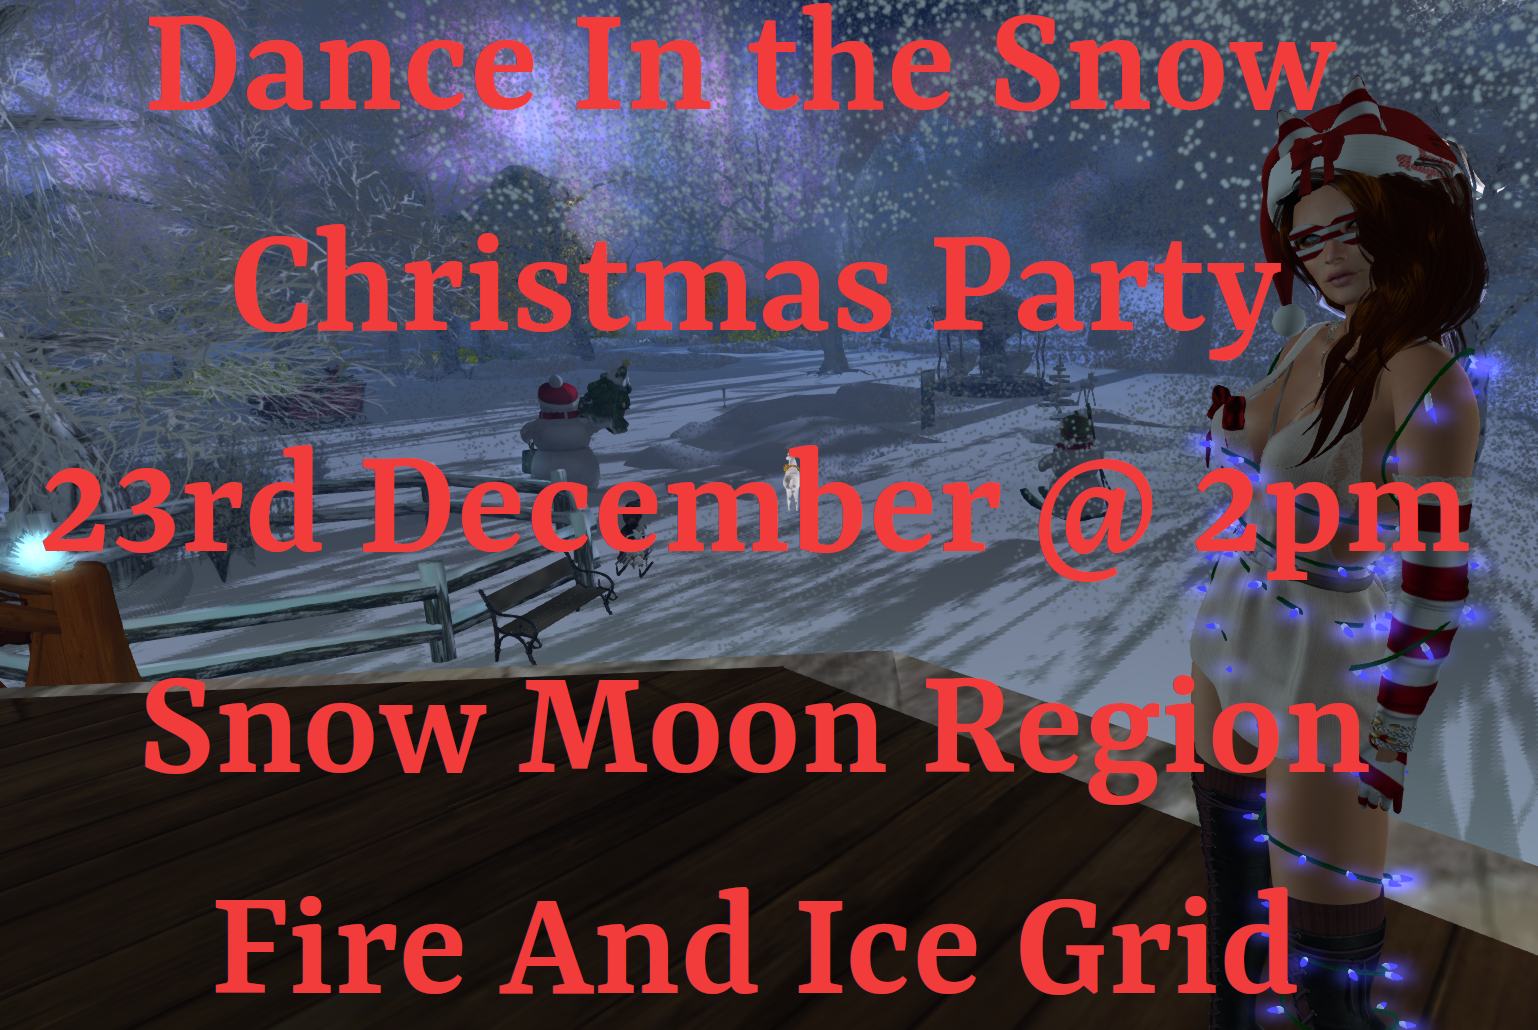 Dance In The Snow - Christmas Party Event